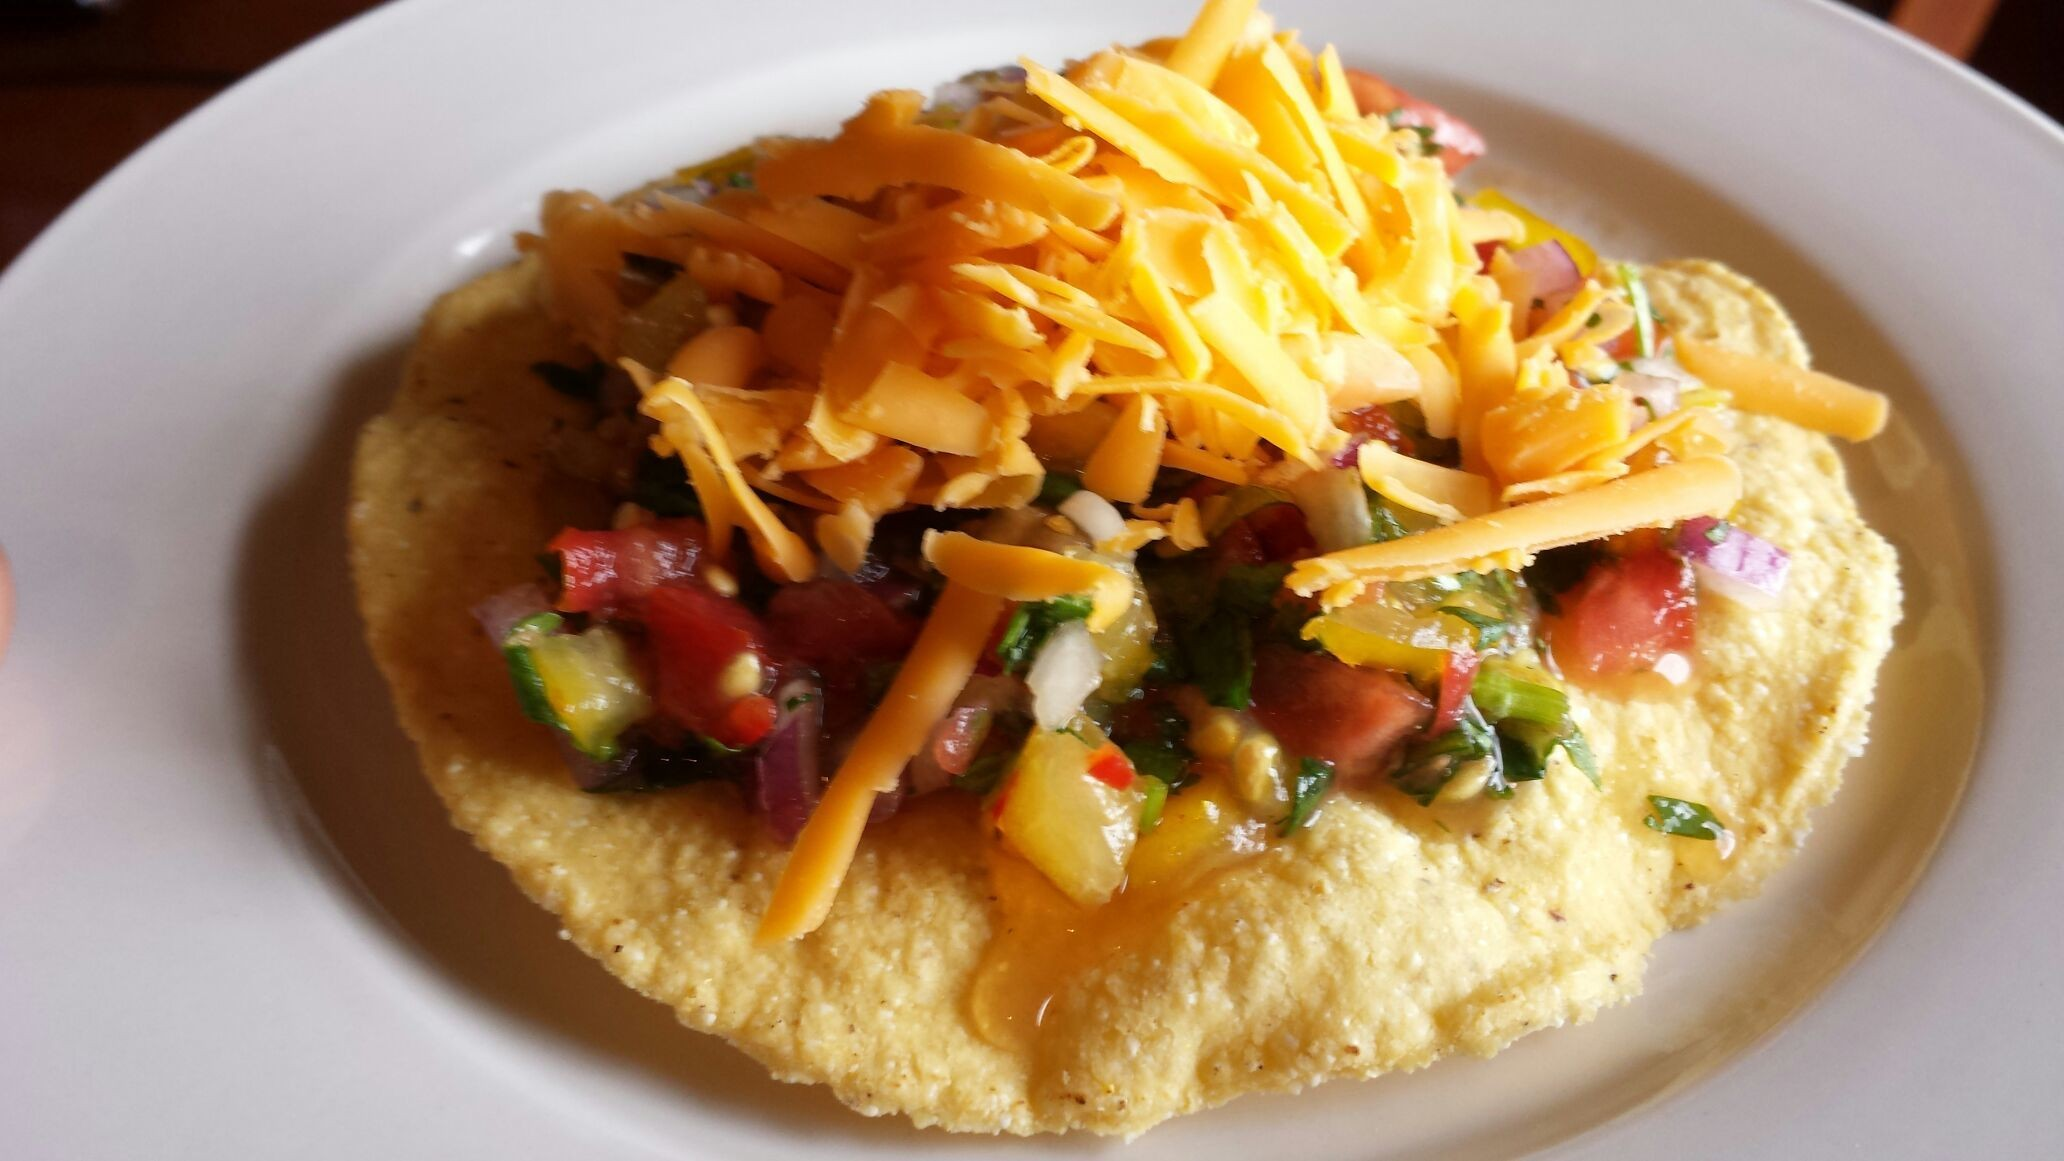 Tostada with pico de gallo and shredded cheese. Pre-dinner snack!